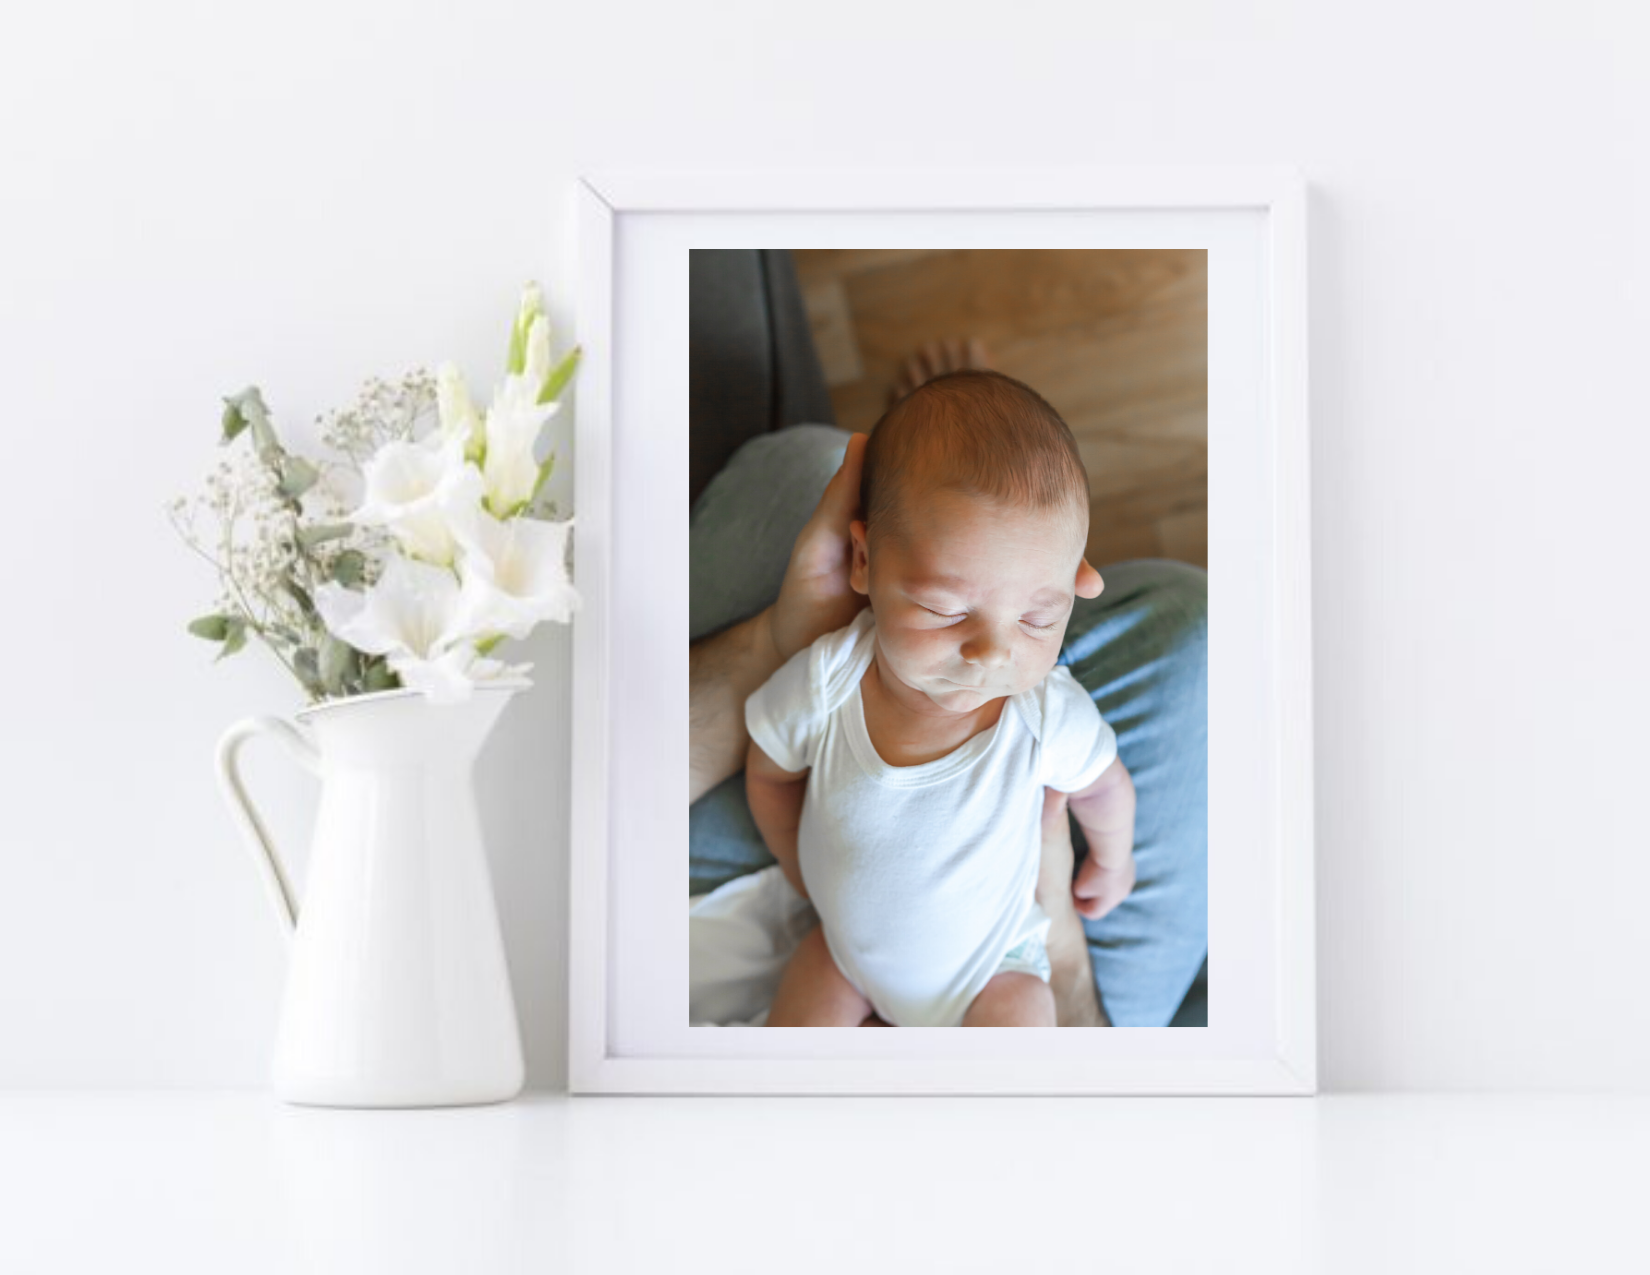 photo of newborn baby boy in picture frame